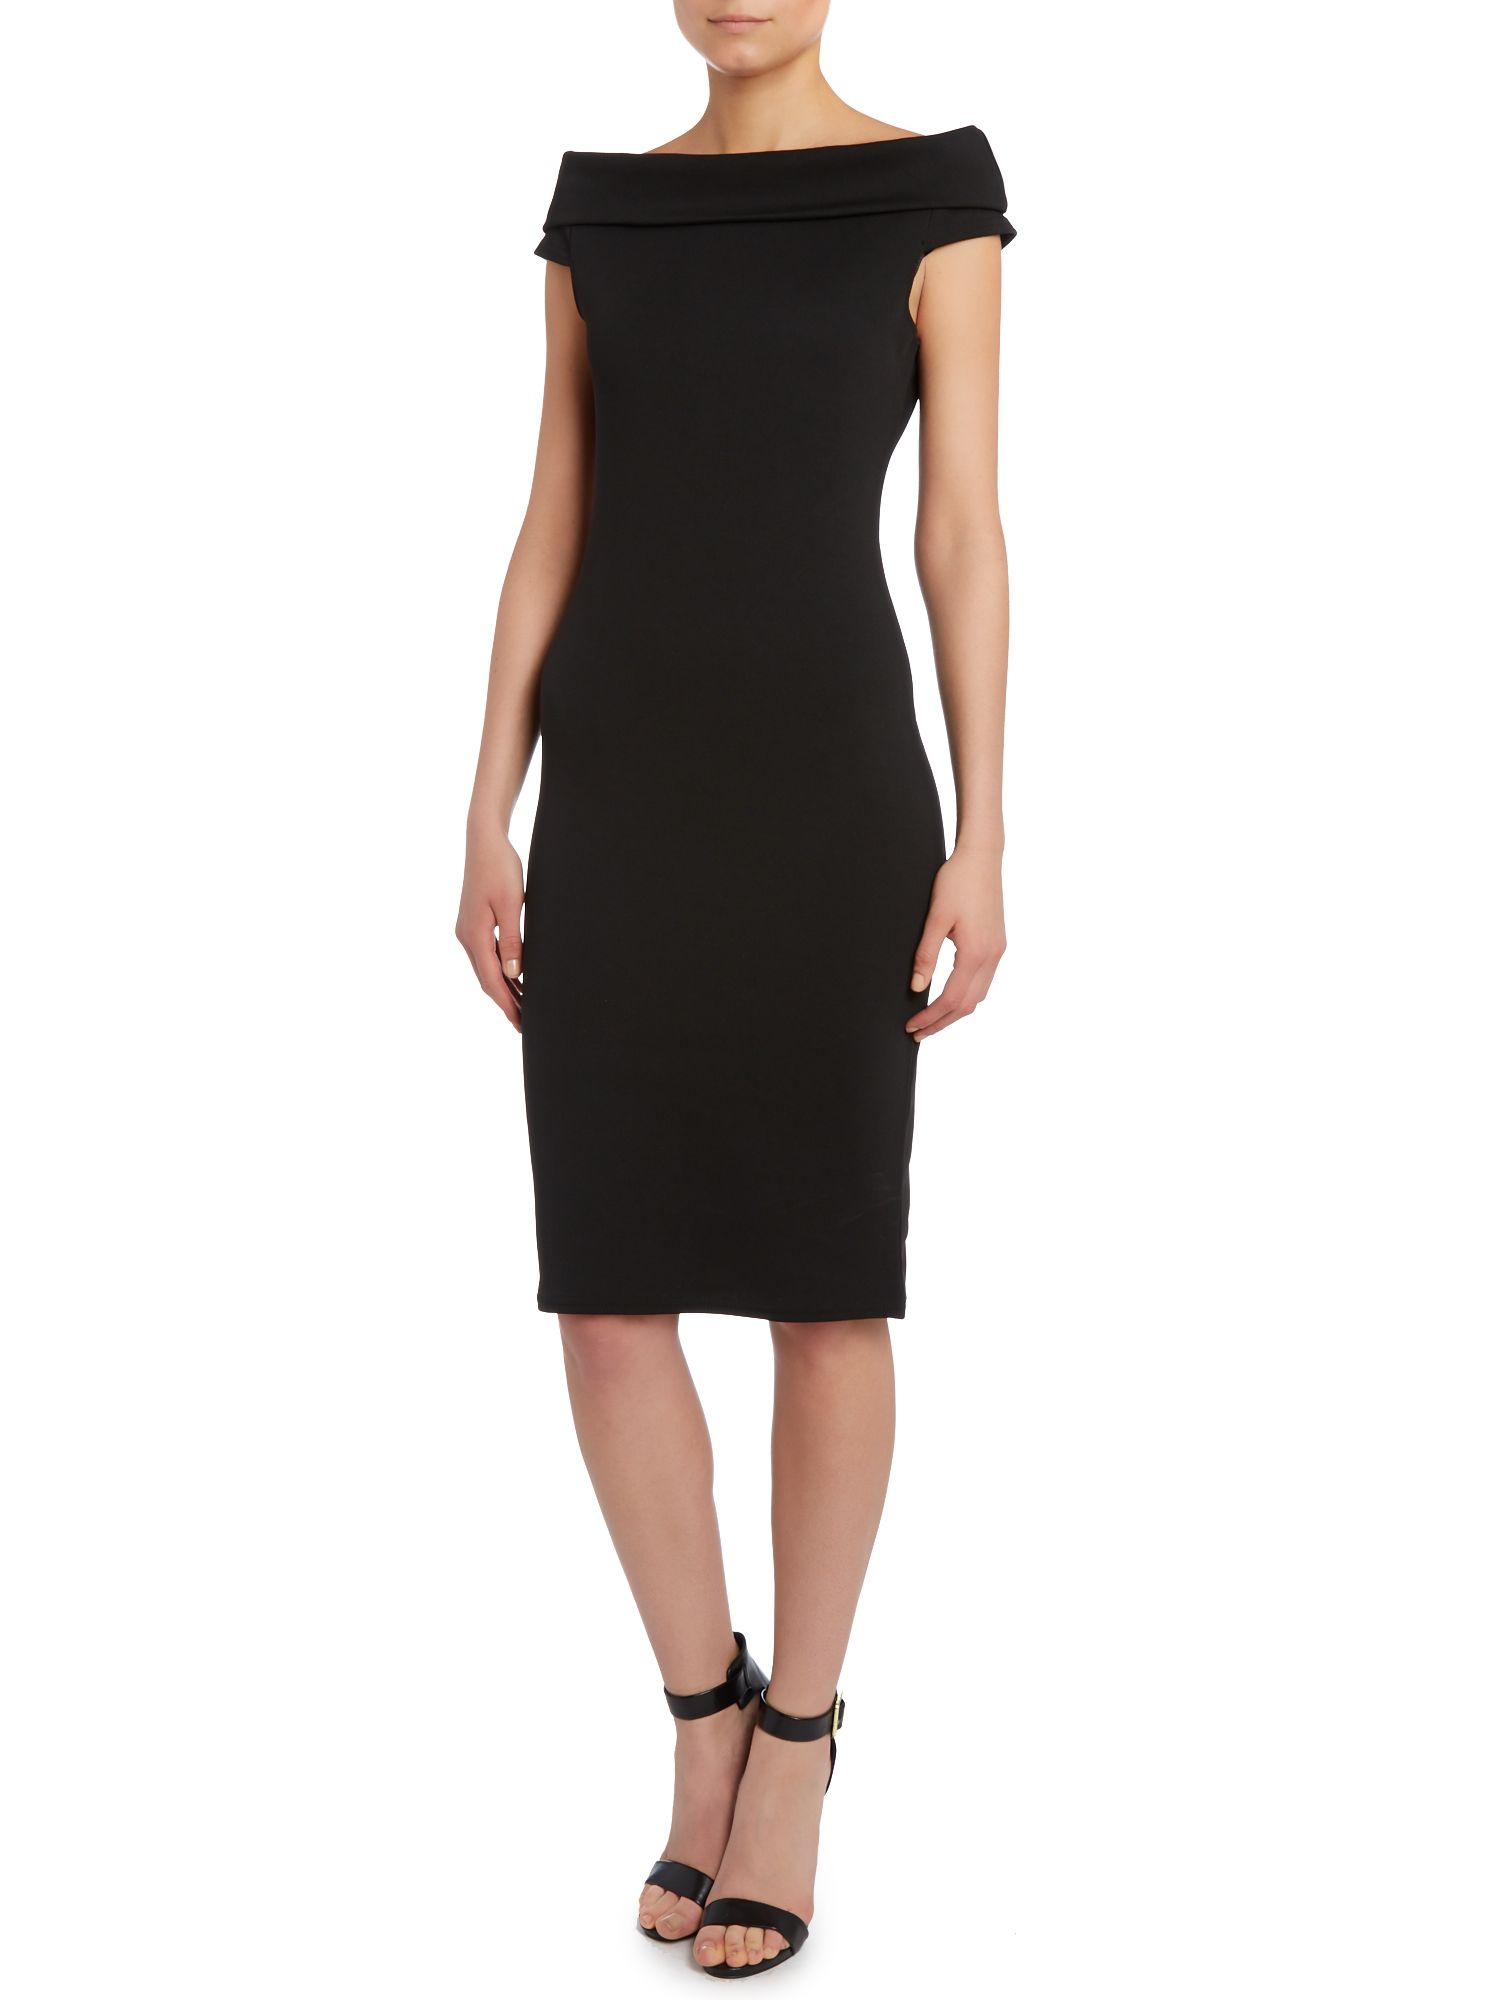 Bardot neck sleeveless dress